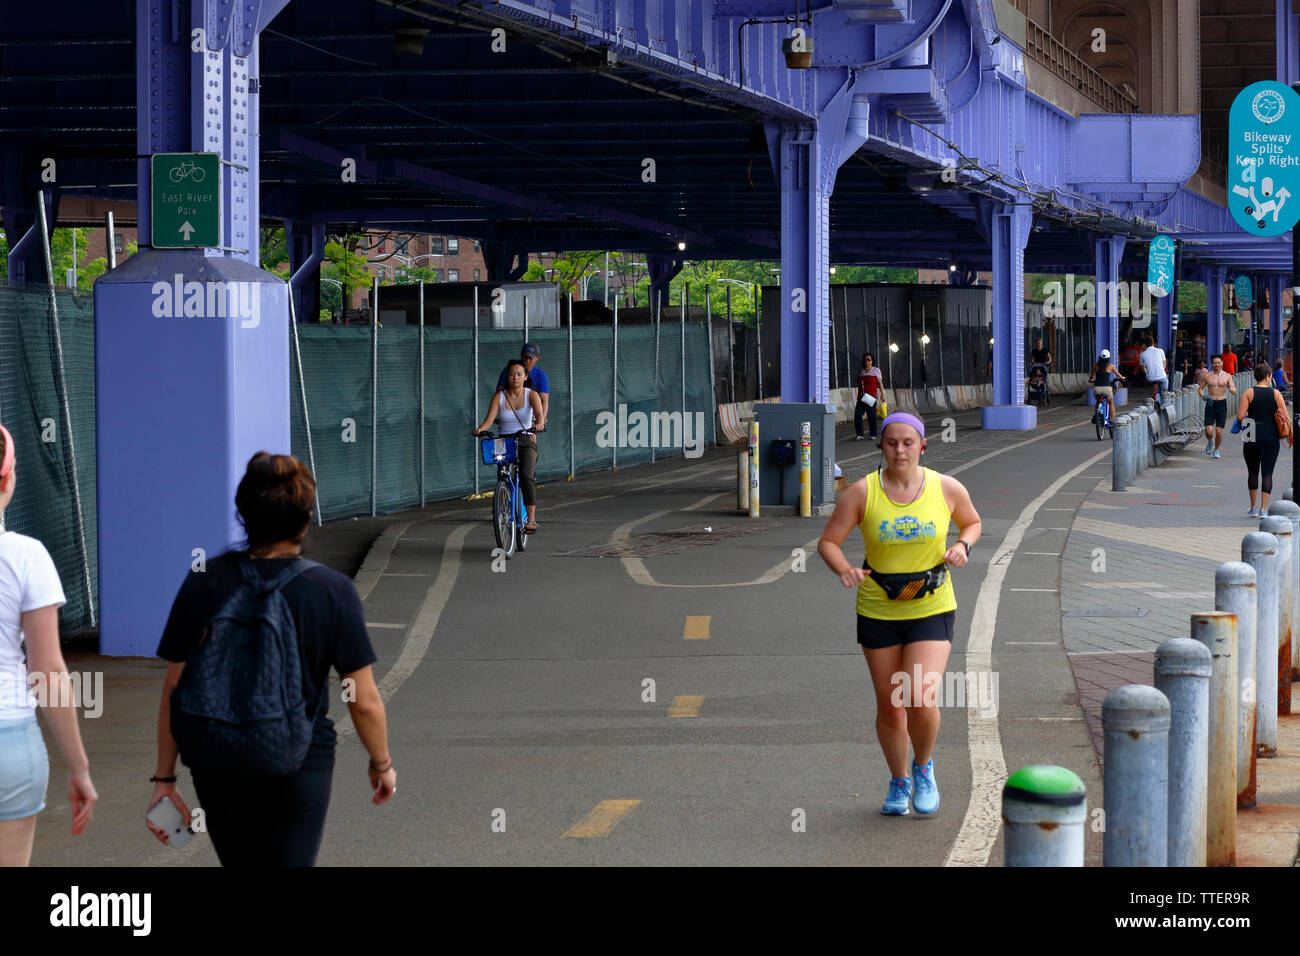 East River Greenway under the FDR Drive, New York, NY - Stock Image